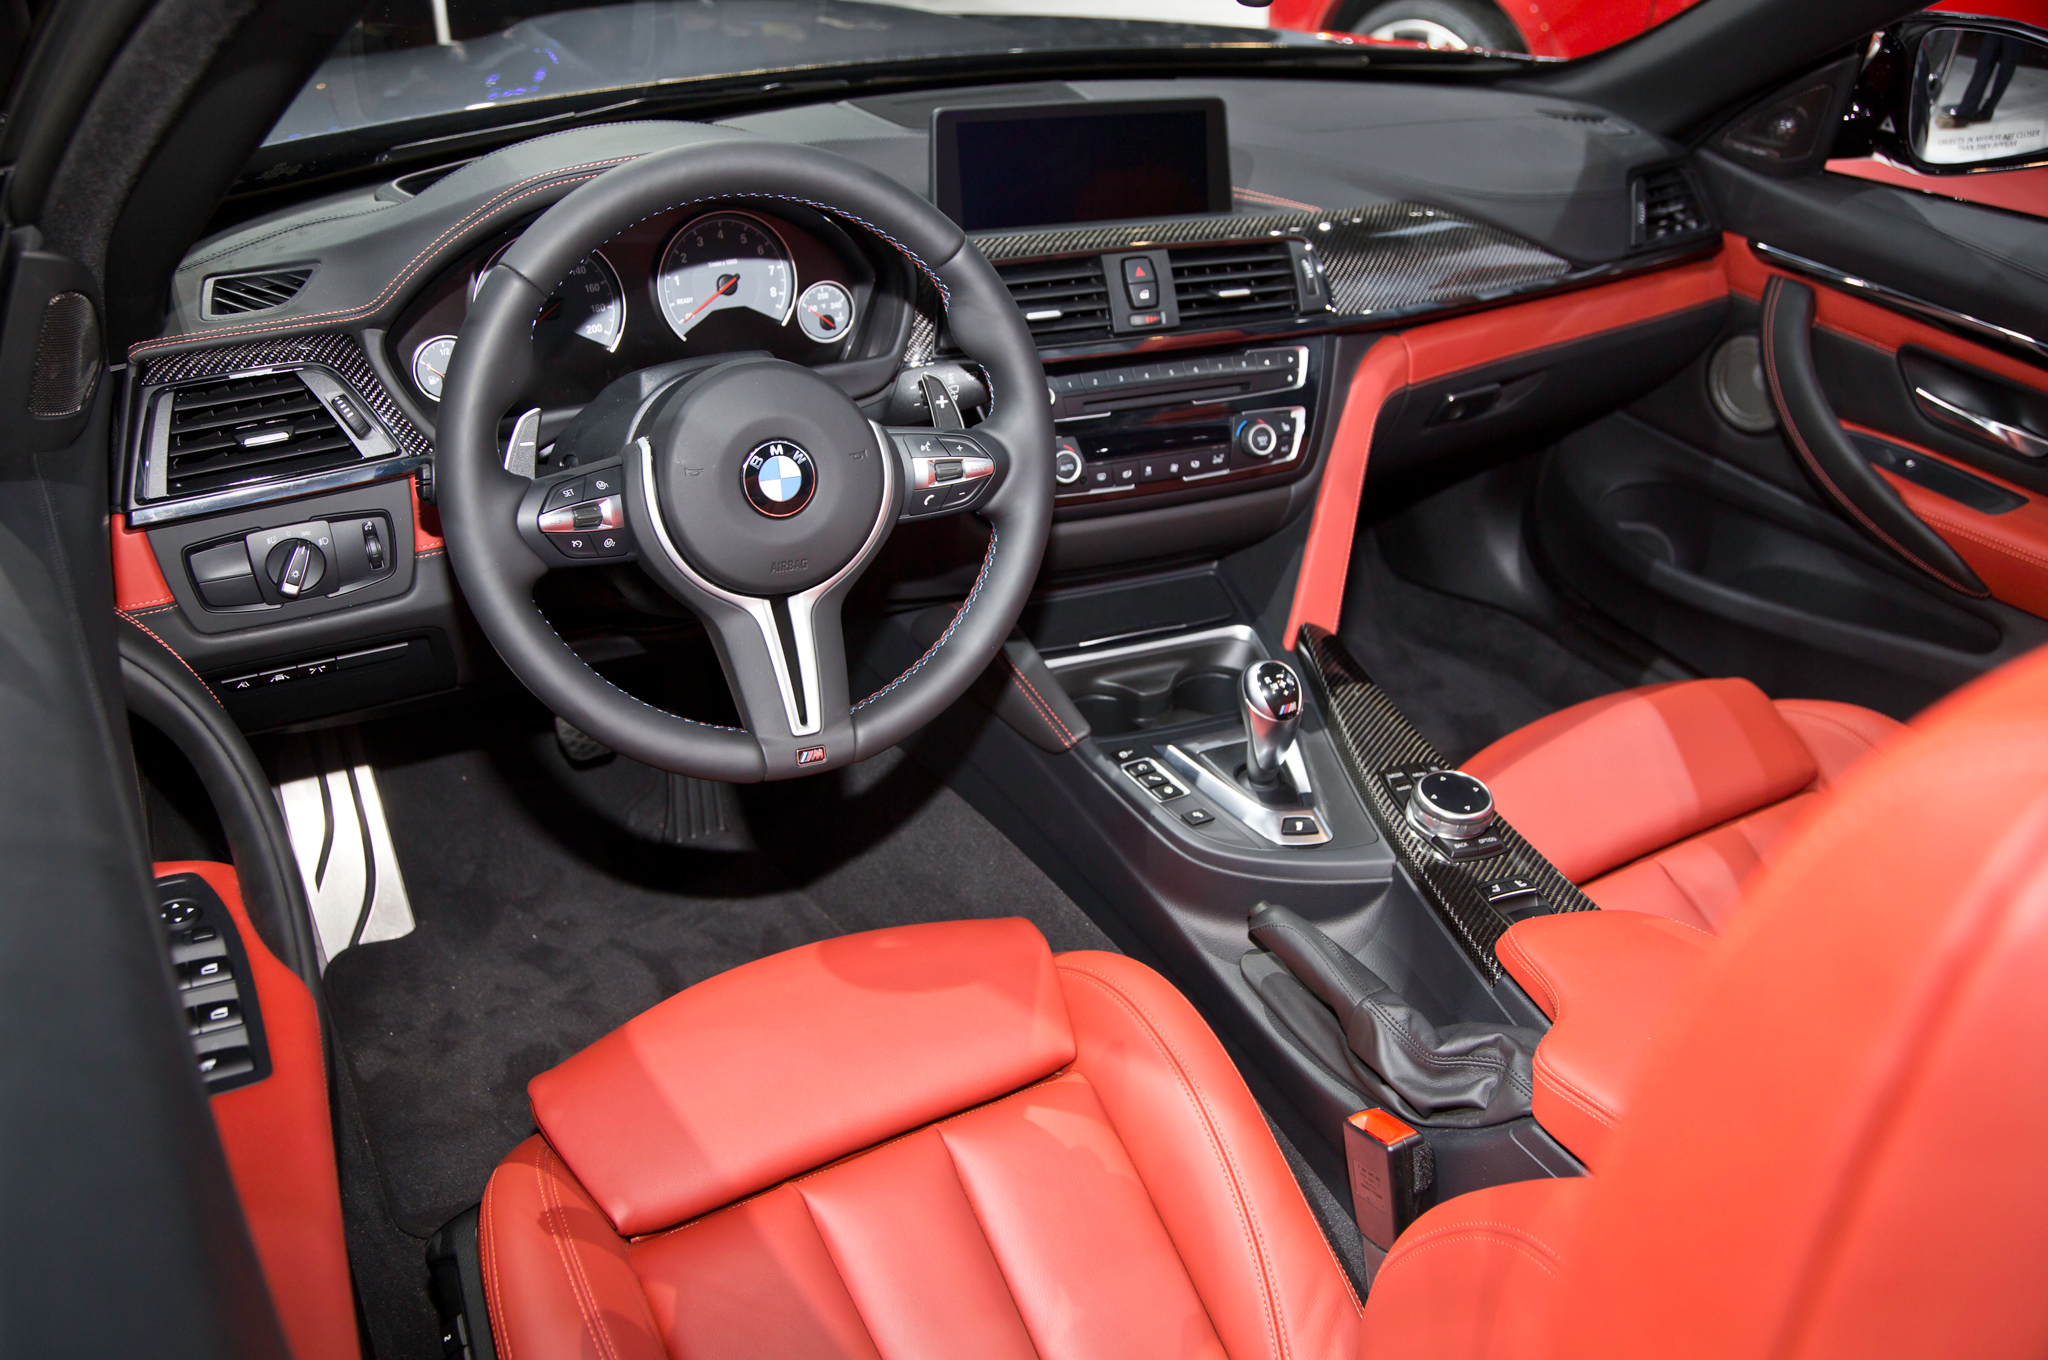 2015 Bmw M4 Convertible Dashboard And Cockpit (Photo 34 of 50)